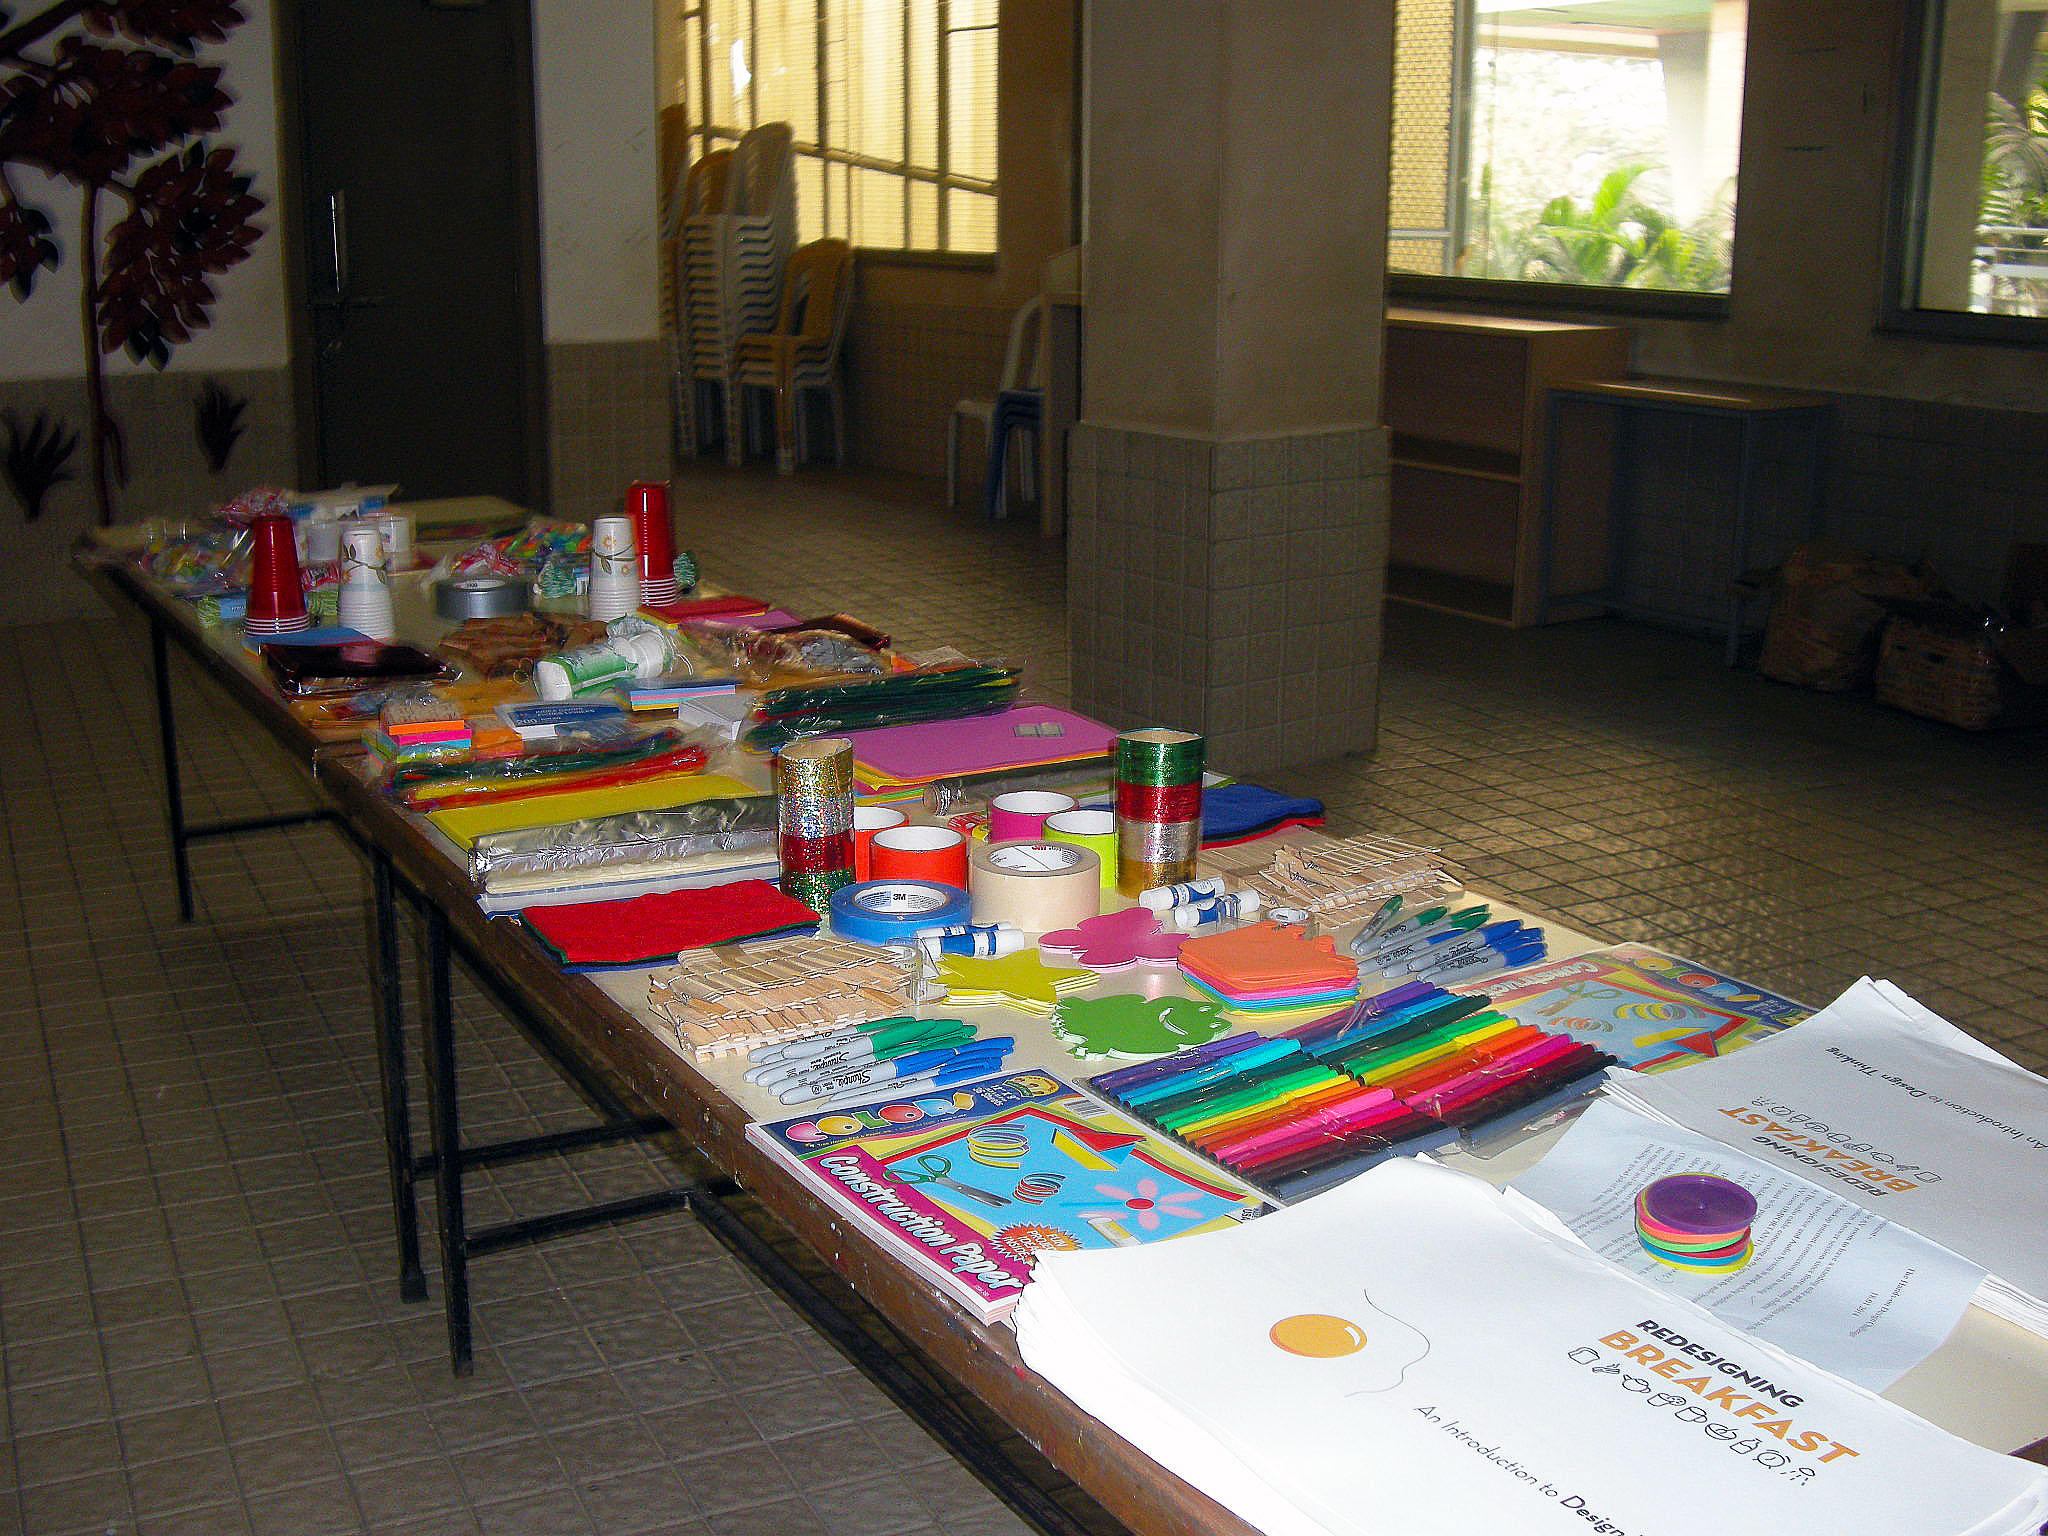 Prototyping supplies rest on a table at the Nalanda Public School in Mumbai India. The table and its location remained a mystery to the U.S. instructors as they guided students through the design project. (Photo by Rajendra Ramesh Bendre)